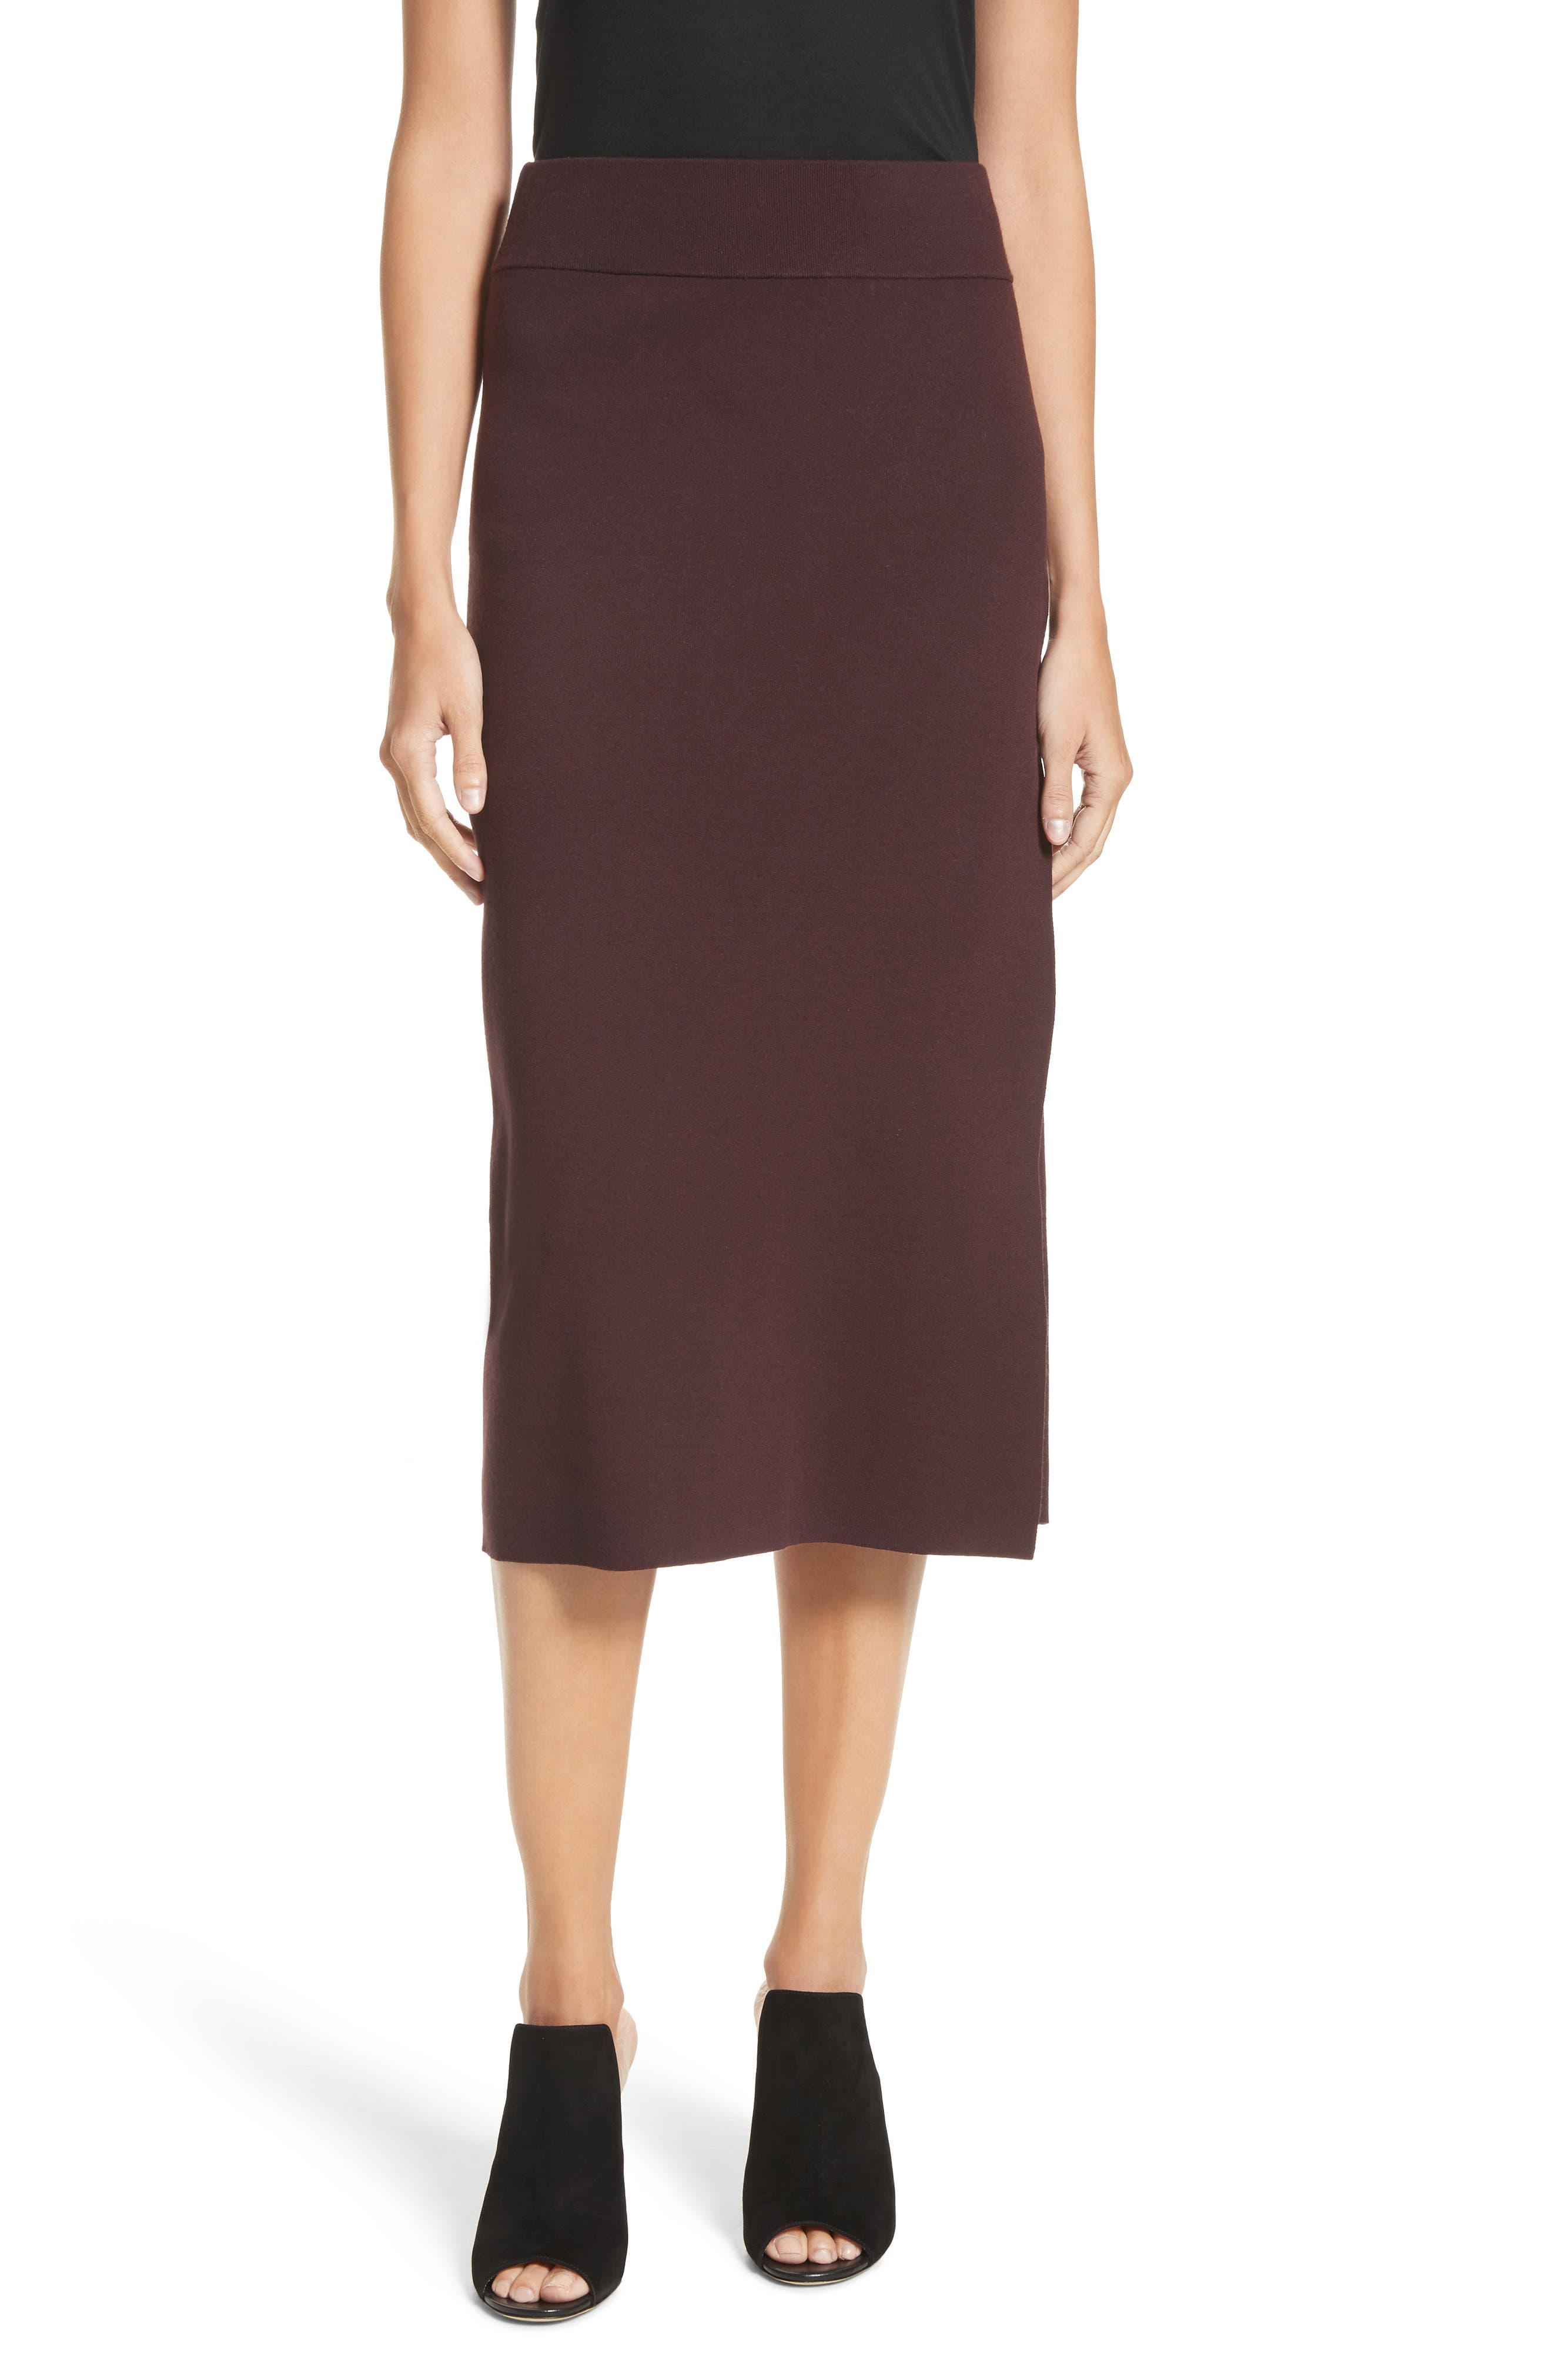 A.L.C. Smith Knit Pencil Skirt